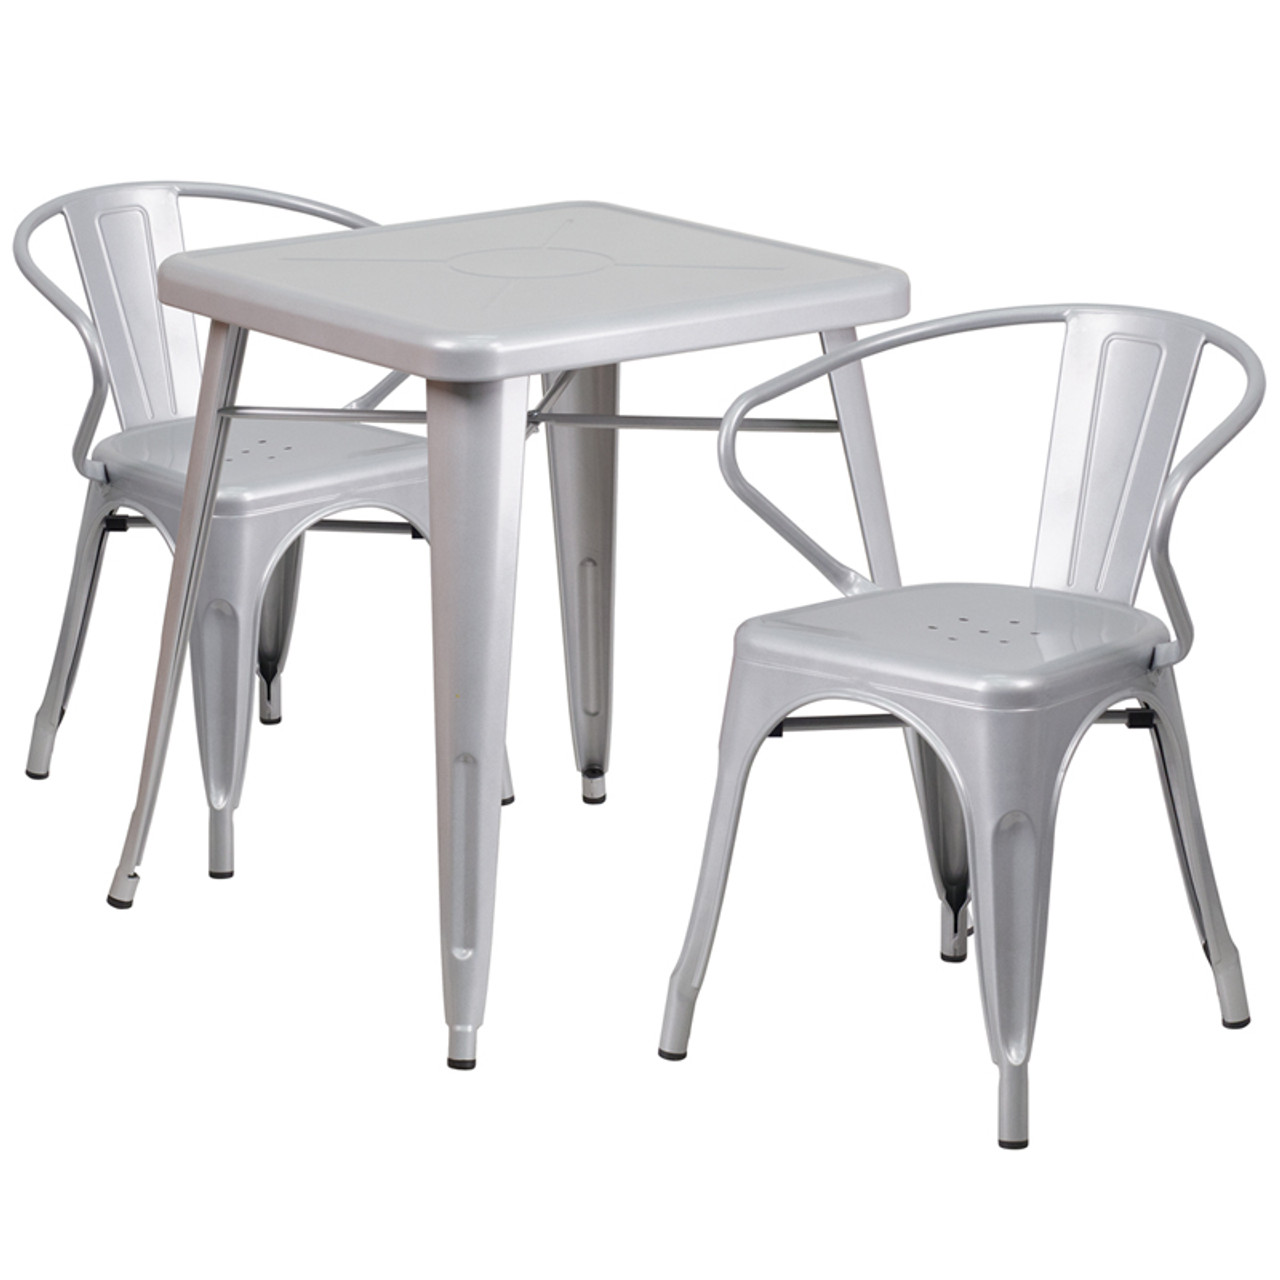 Metal Colorful Table and Chair Sets